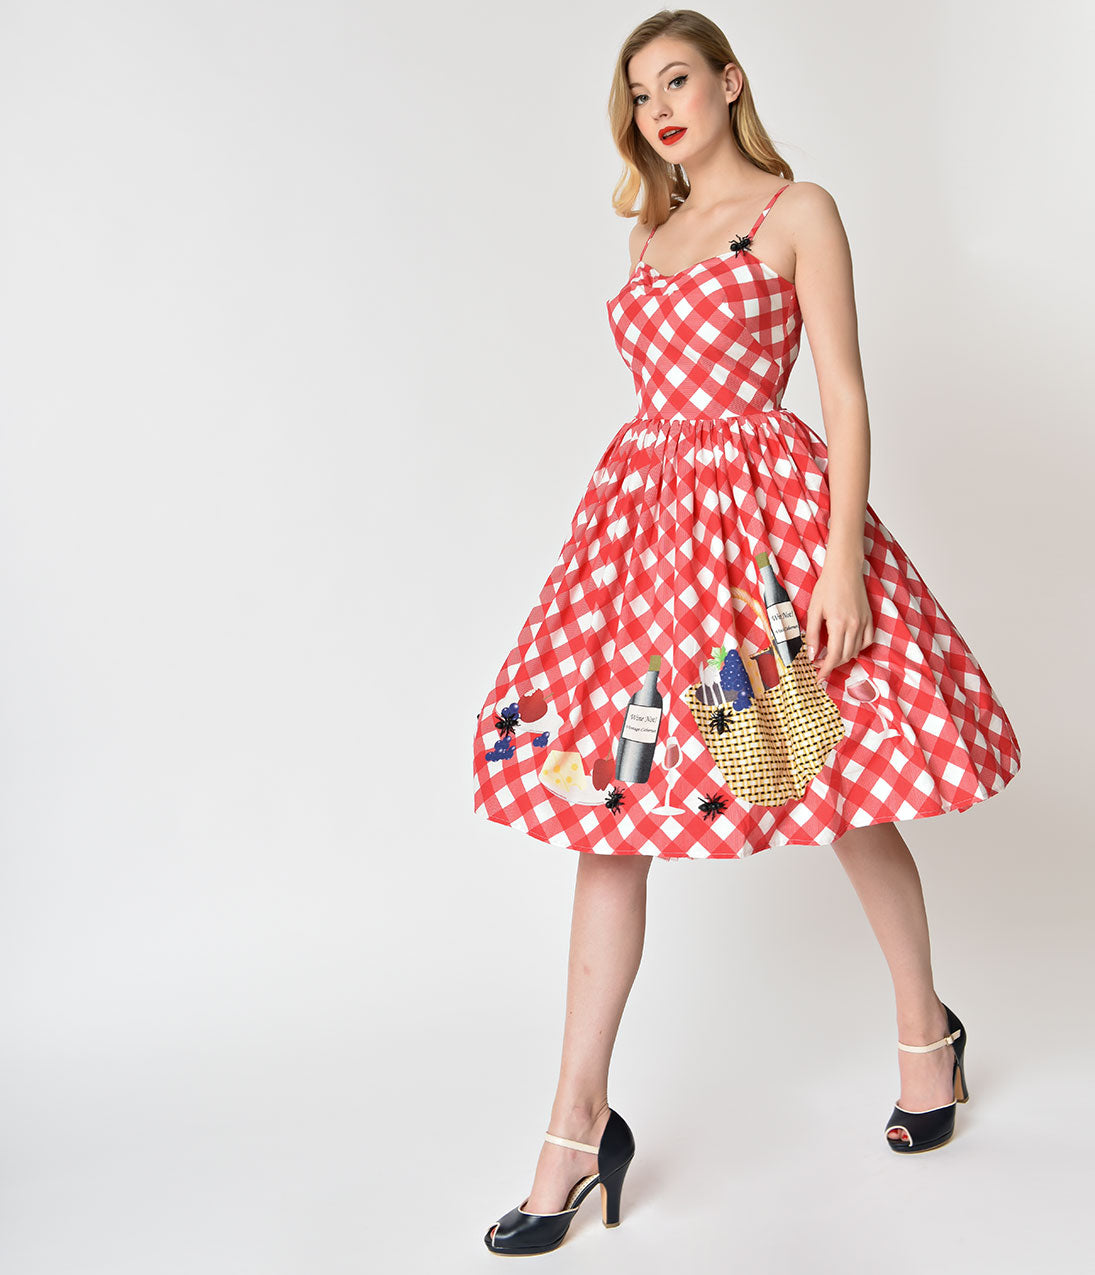 Pin Up Dresses | Pinup Clothing & Fashion Unique Vintage 1950S Style Red  White Checkered Picnic Blanket Darcy Swing Dress $118.00 AT vintagedancer.com